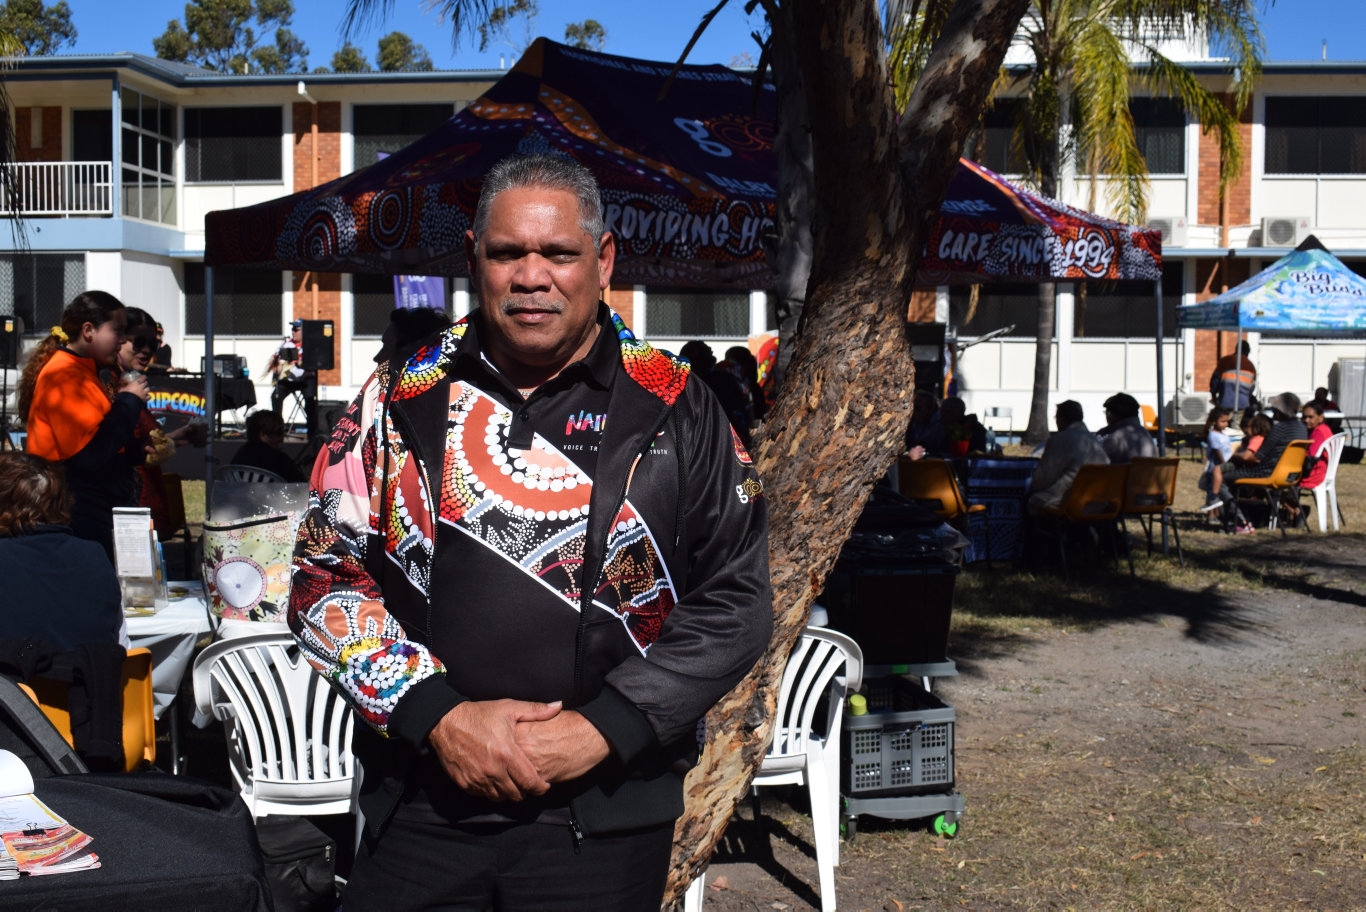 IMPORTANCE OF NAIDOC: Floyd Leedie sees NAIDOC week as a chance to bridge the gap between indigenous and non-indigenous Australians.